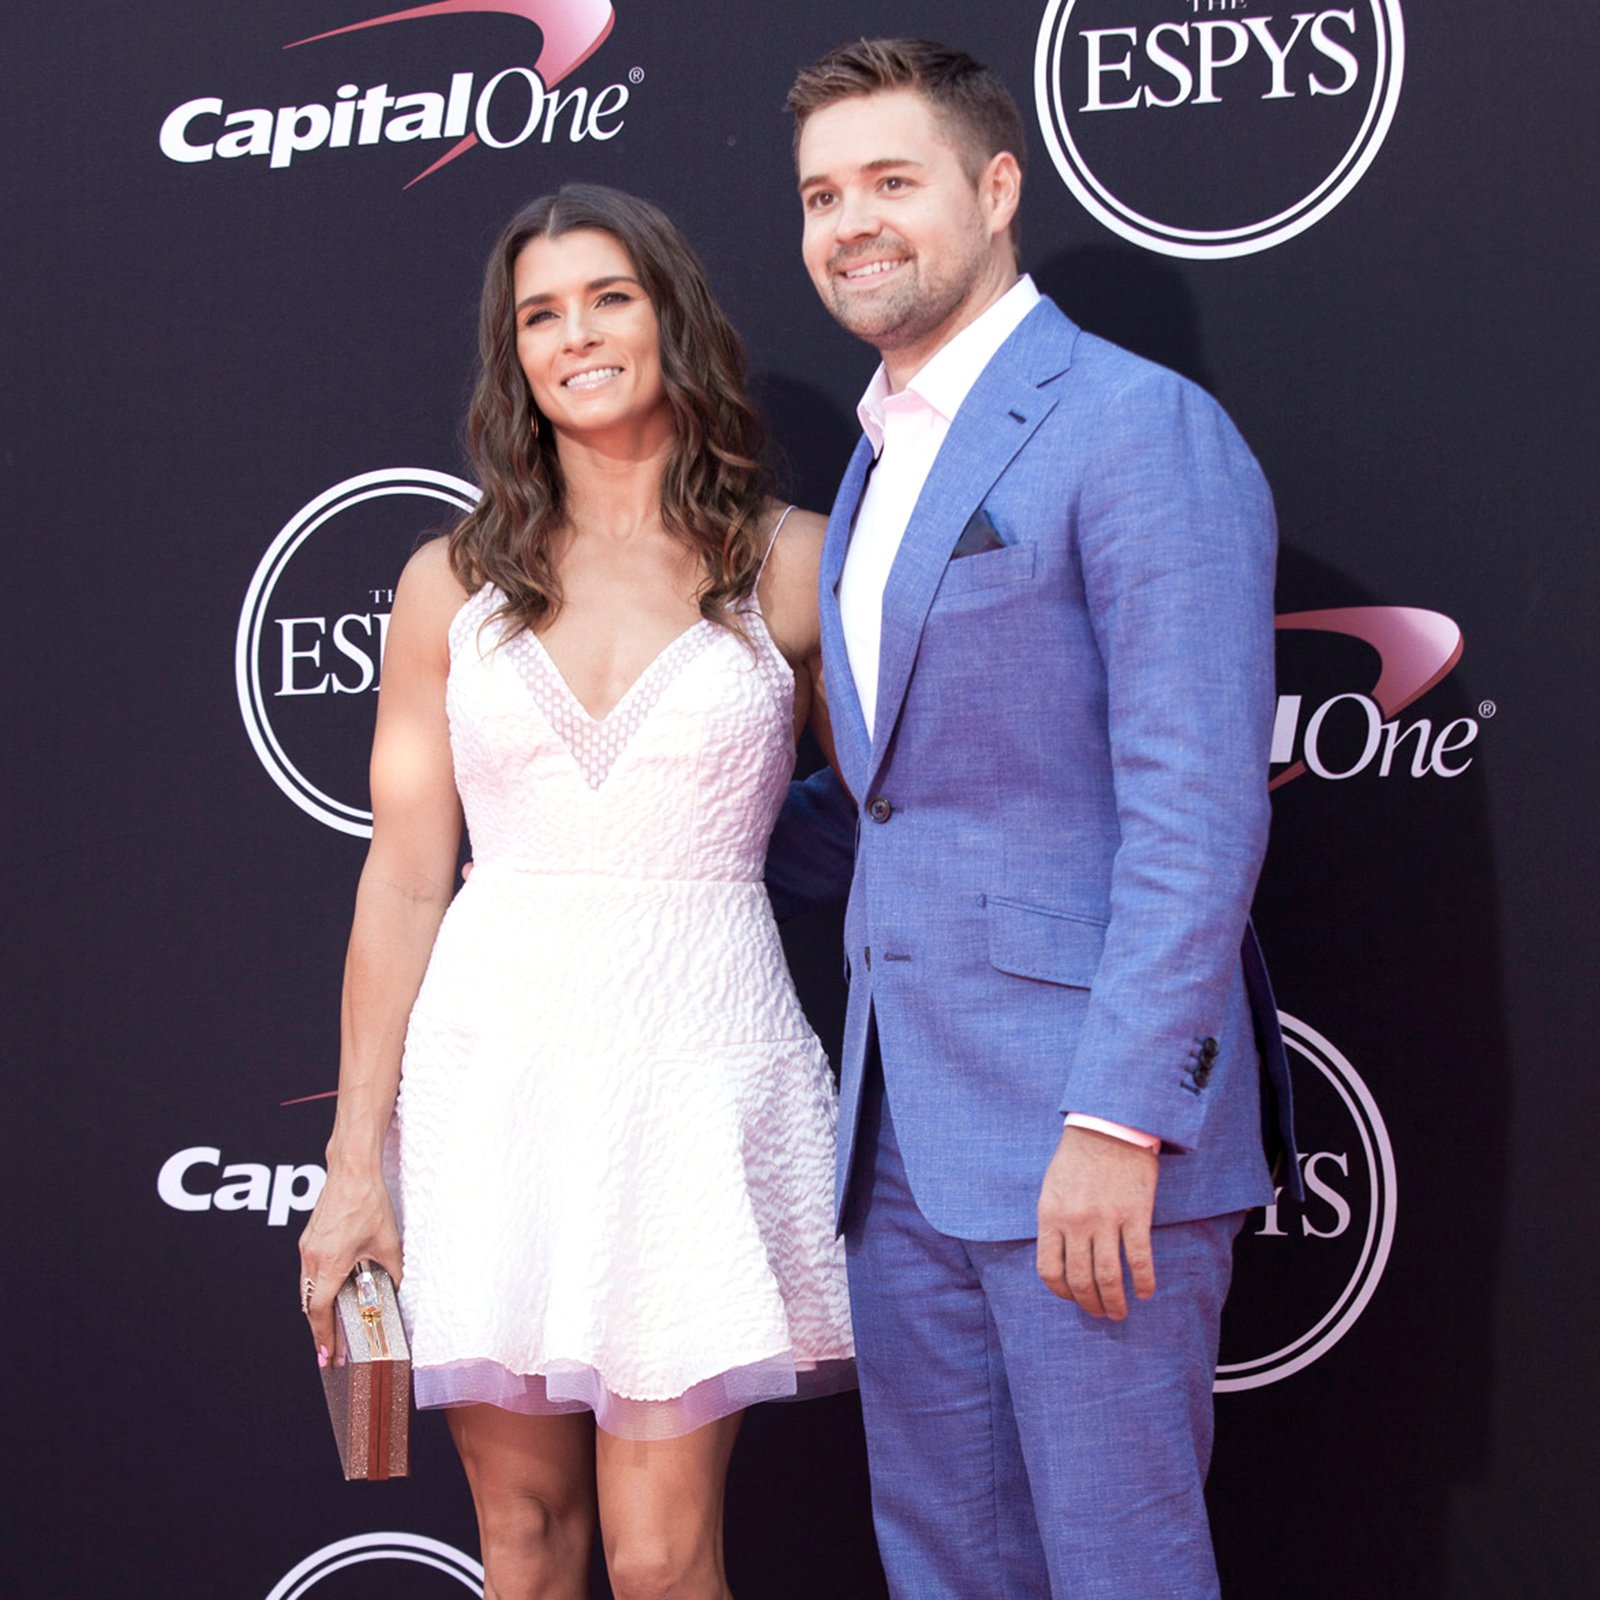 Danica Patrick and fellow NASCAR driver and boyfriend, Ricky Stenhouse Jr.